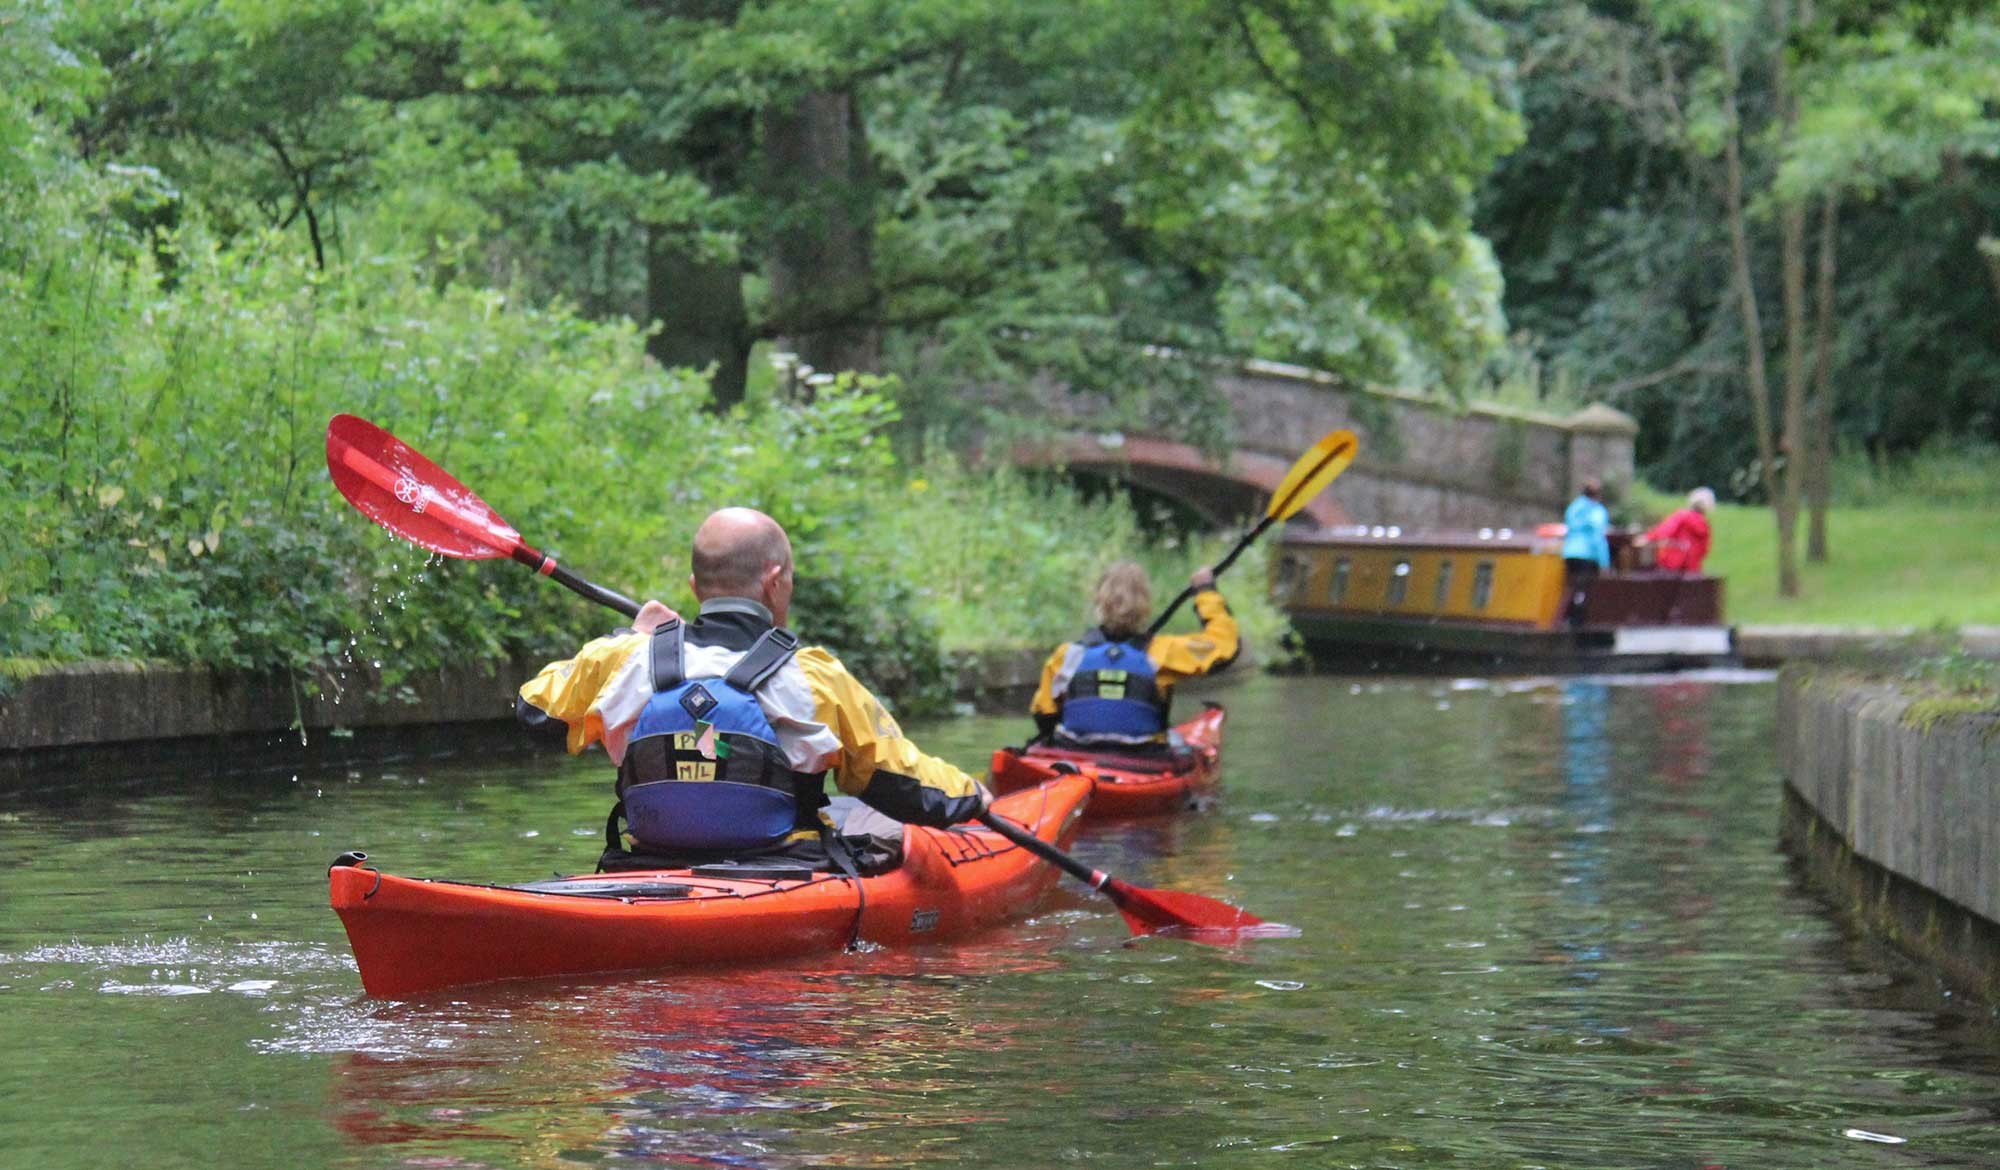 Canoeing on the Llangollen canal